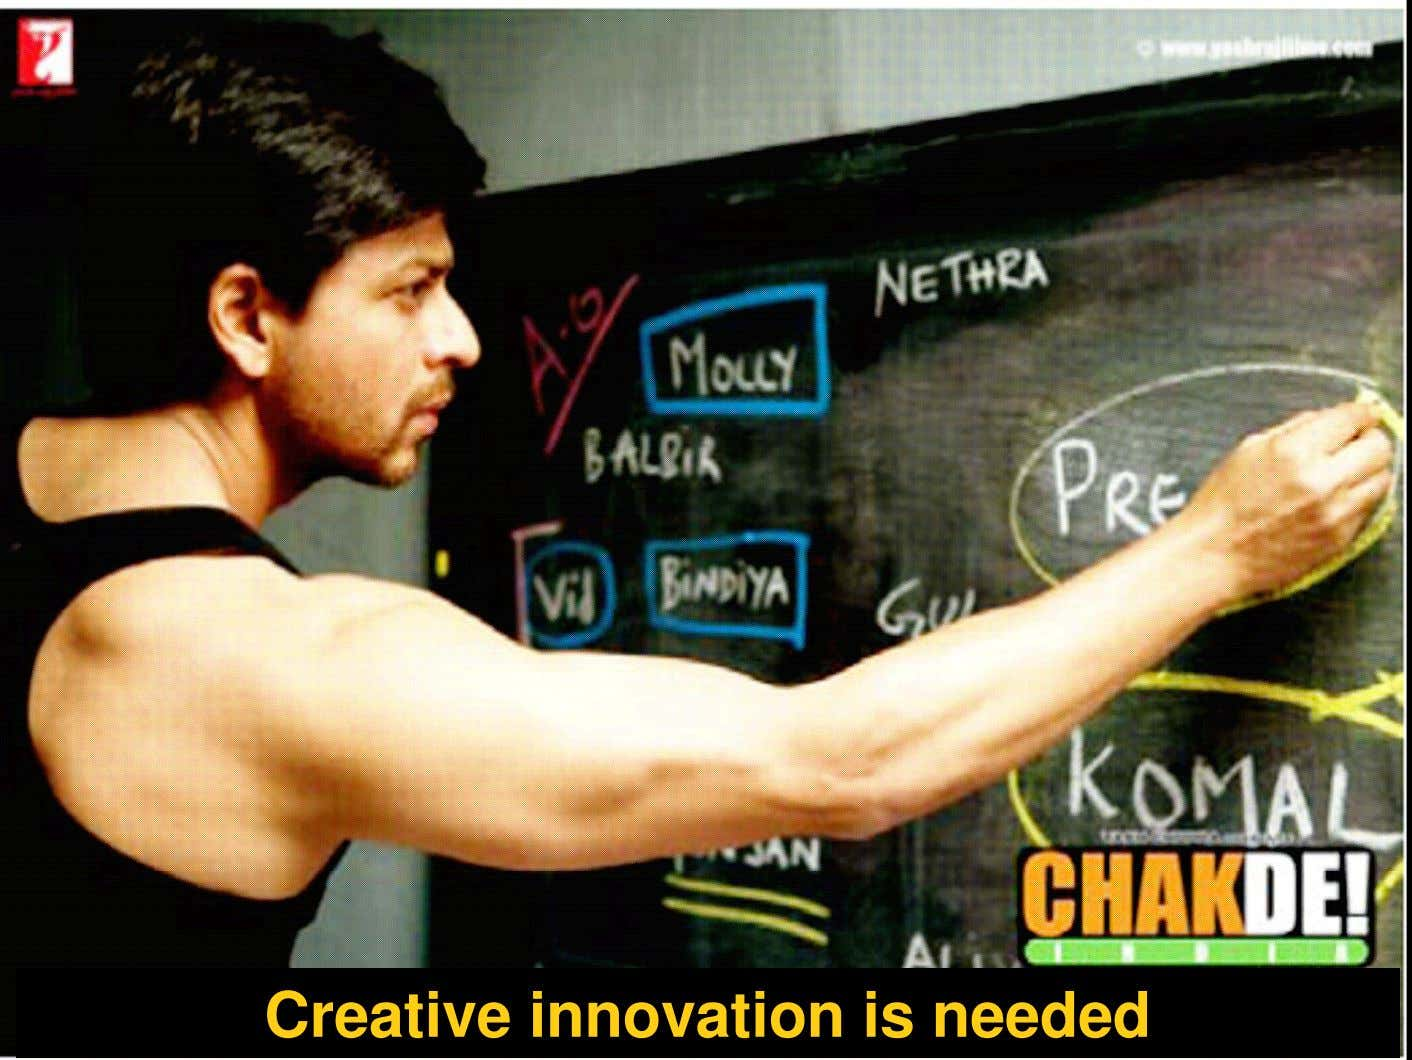 Creative innovation is needed